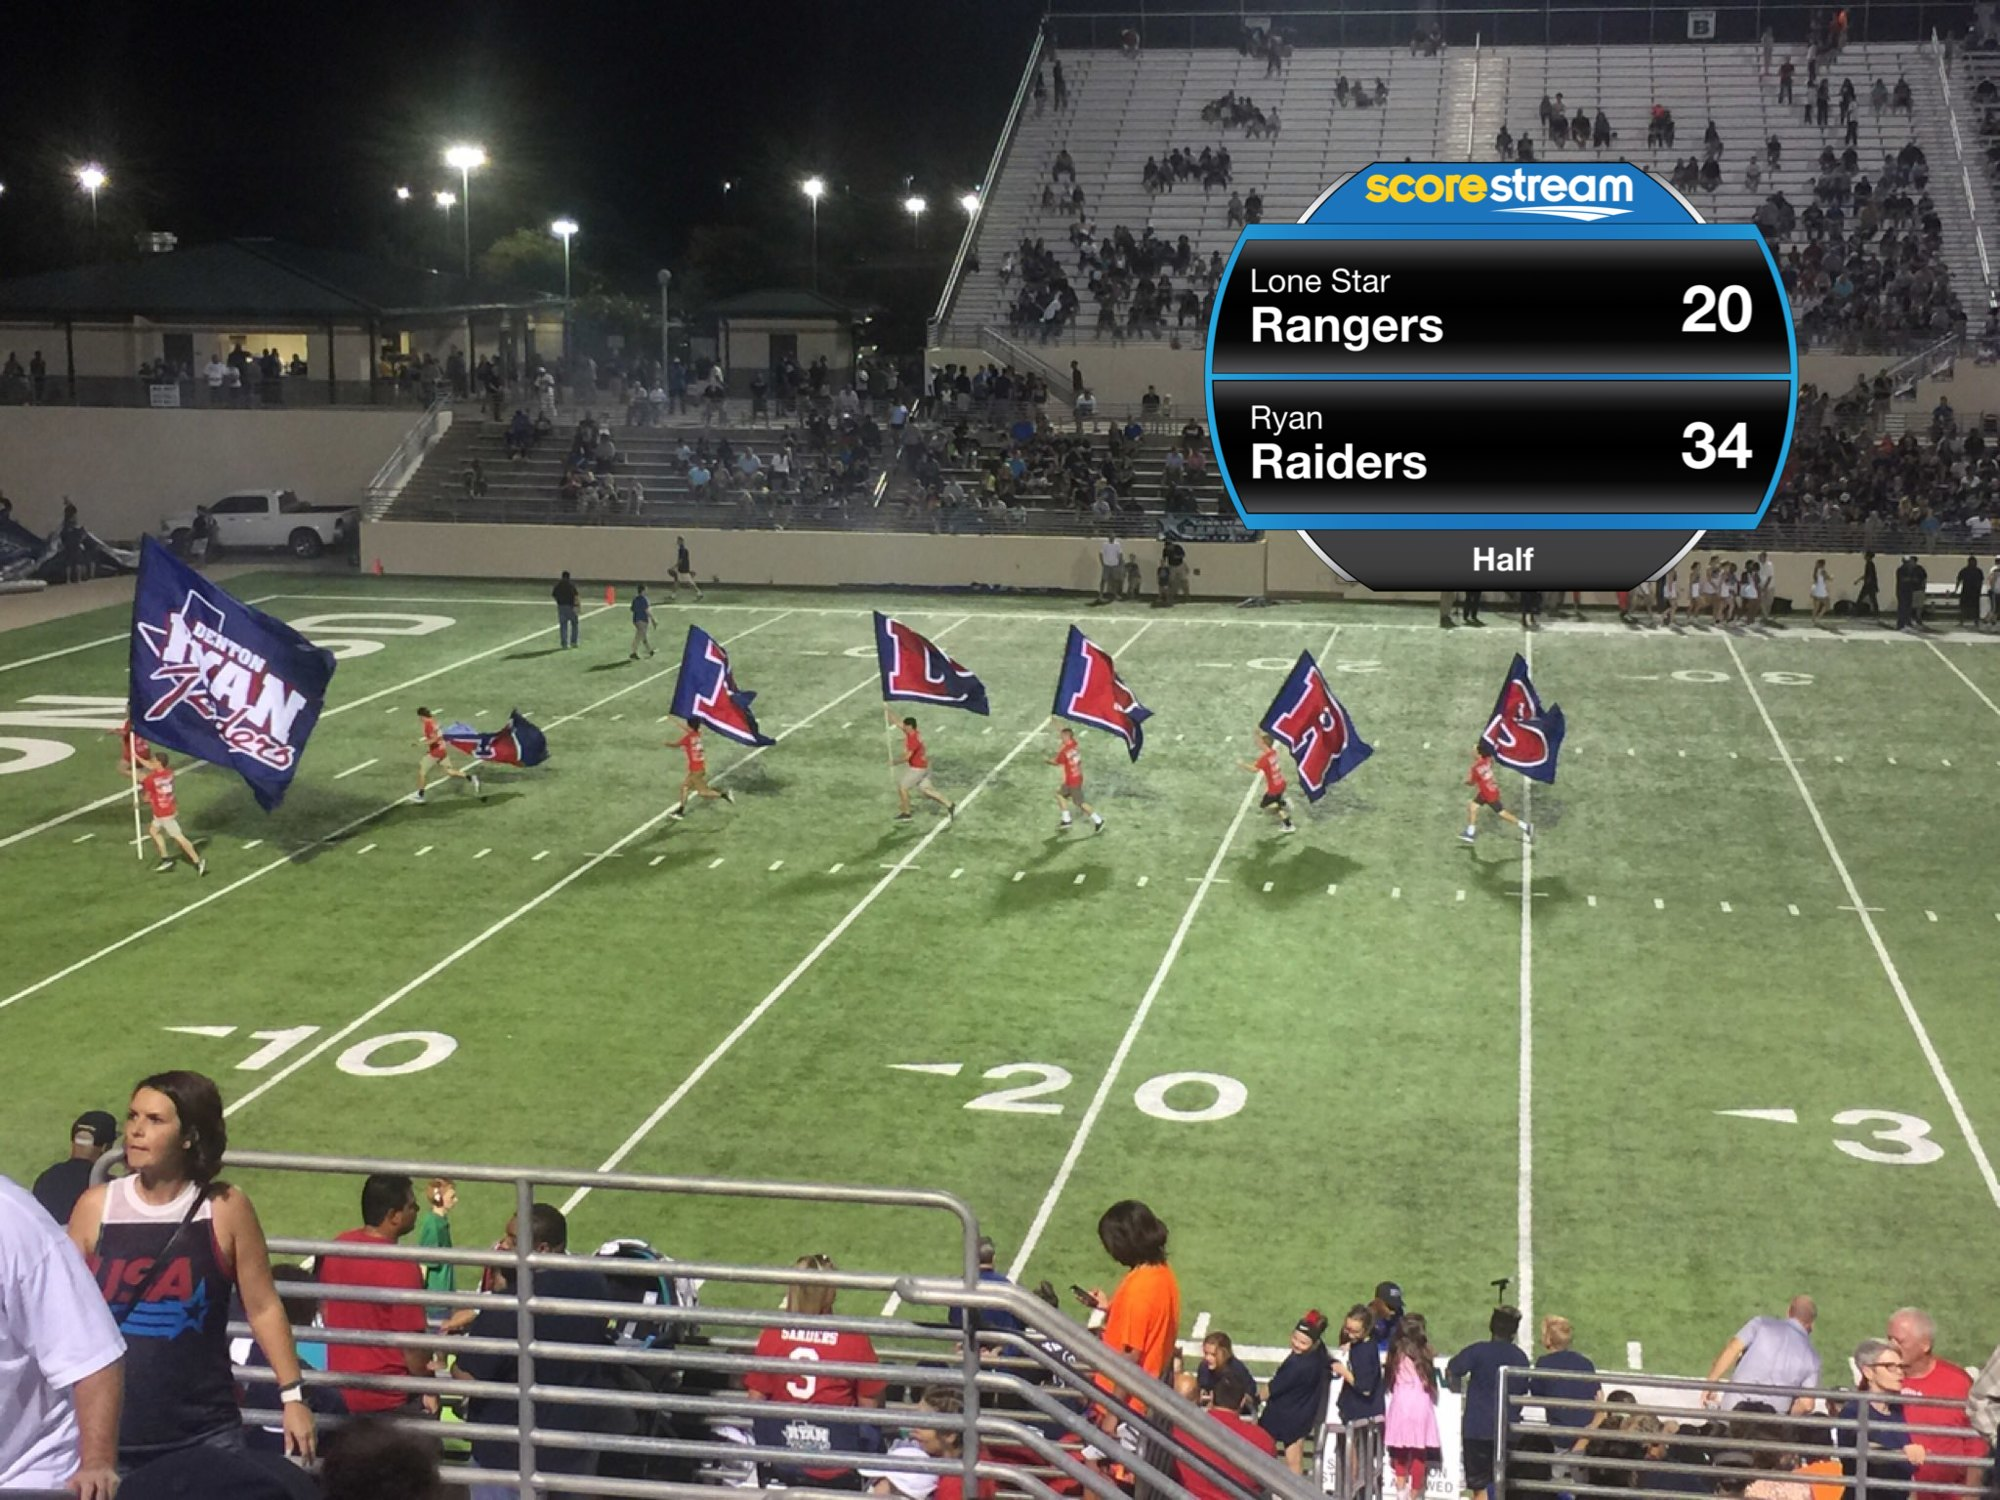 The Lone Star Rangers Vs The Ryan Raiders Scorestream